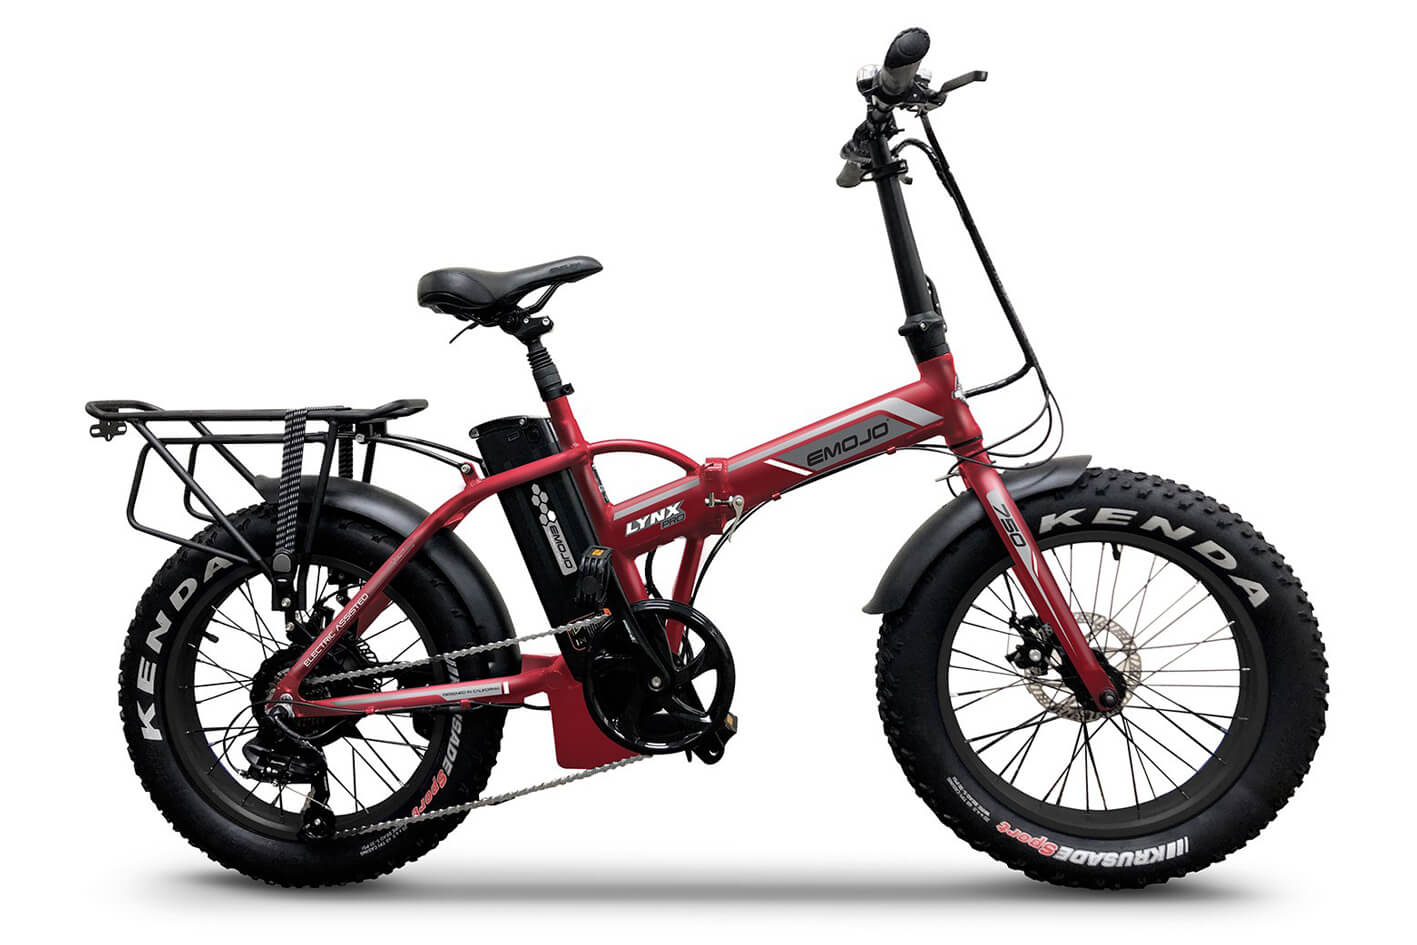 EMOJO LYNX Pro 750 Folding Fat Tire Electric Bike Matte Red